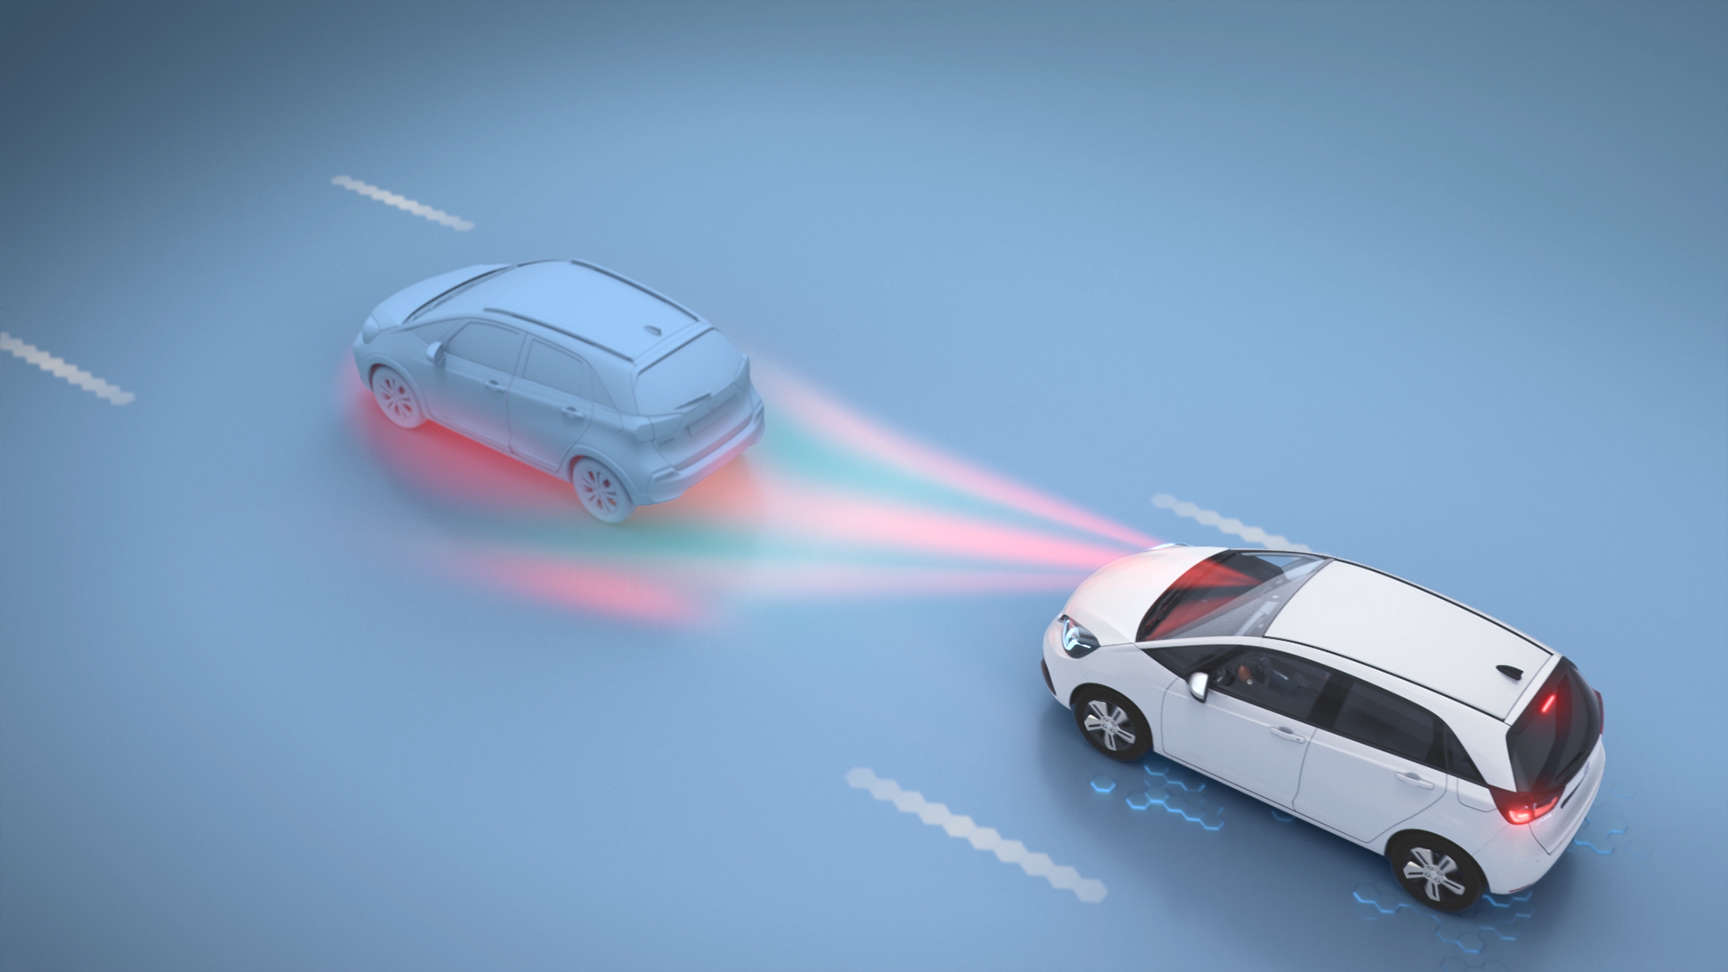 Honda car driving behind another car showing detection signal in Collision management